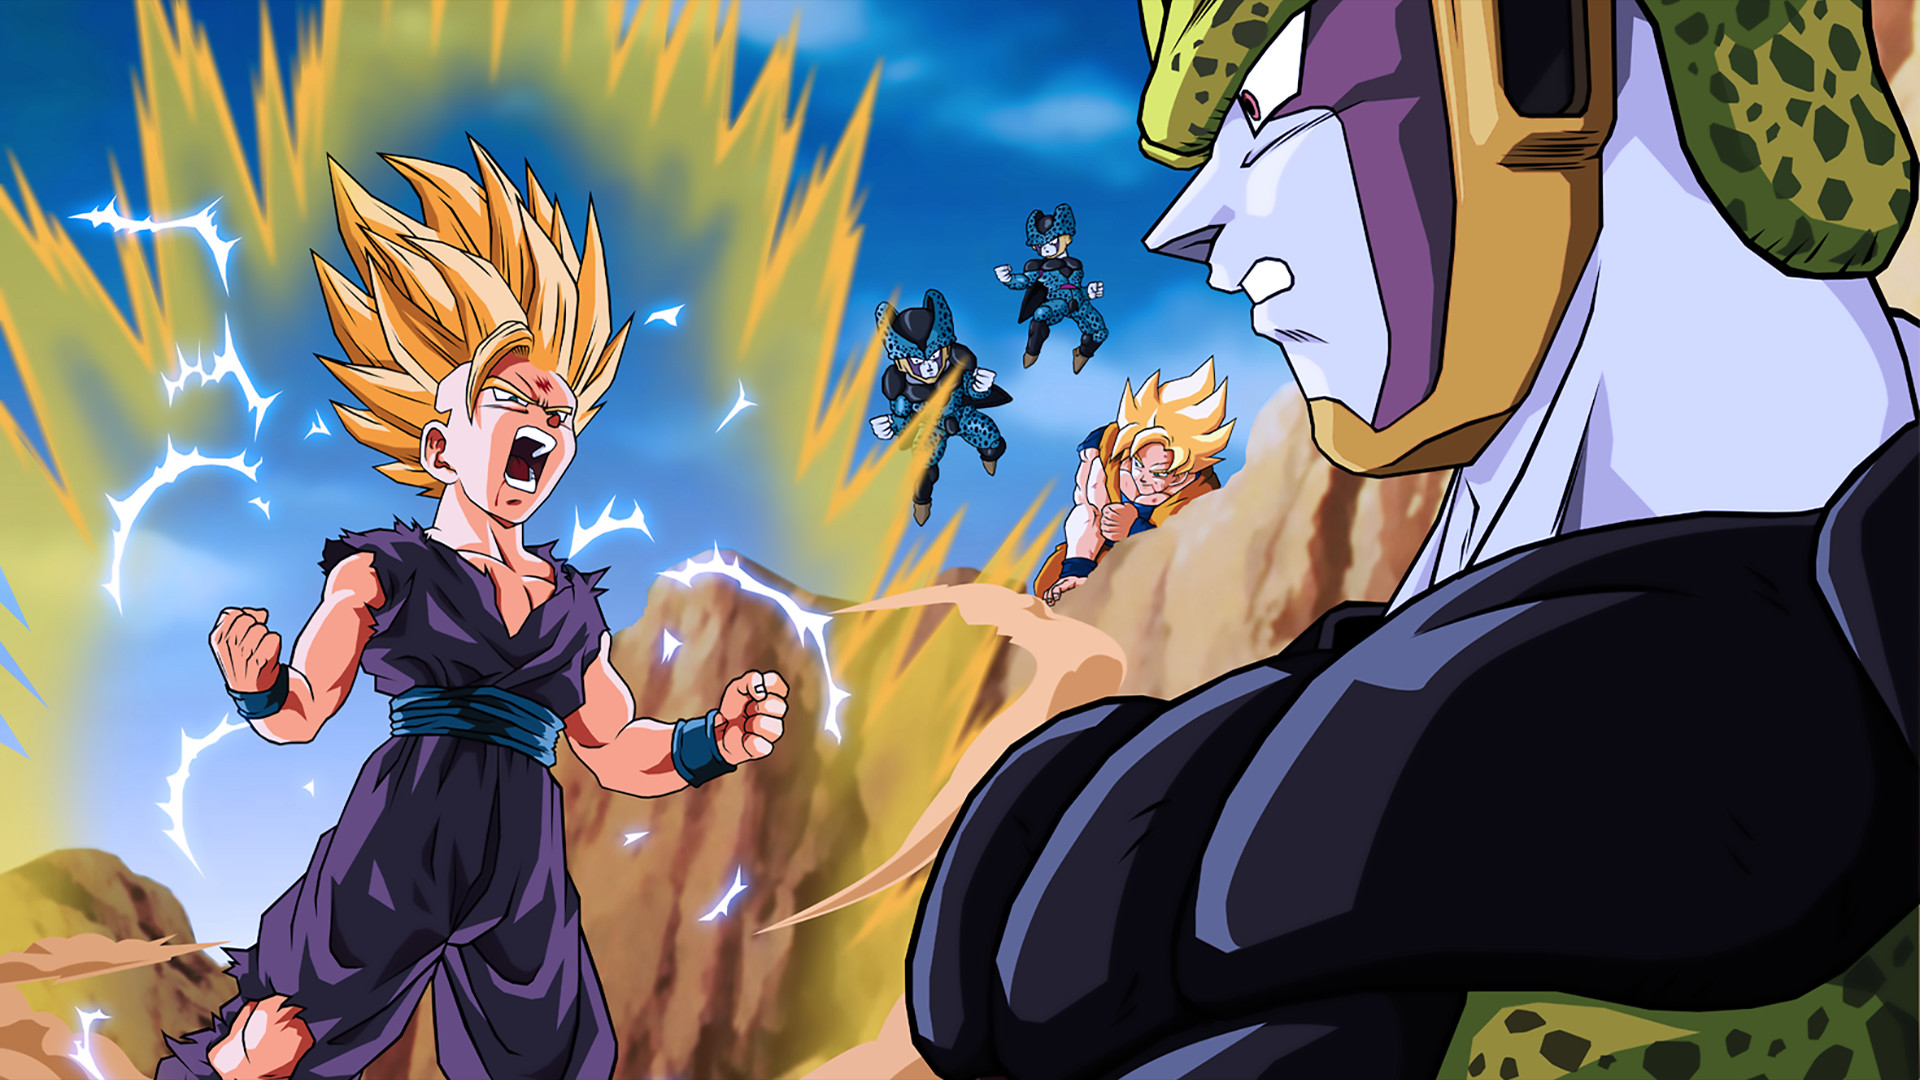 Res: 1920x1080, 102 Gohan (Dragon Ball) HD Wallpapers | Backgrounds - Wallpaper Abyss